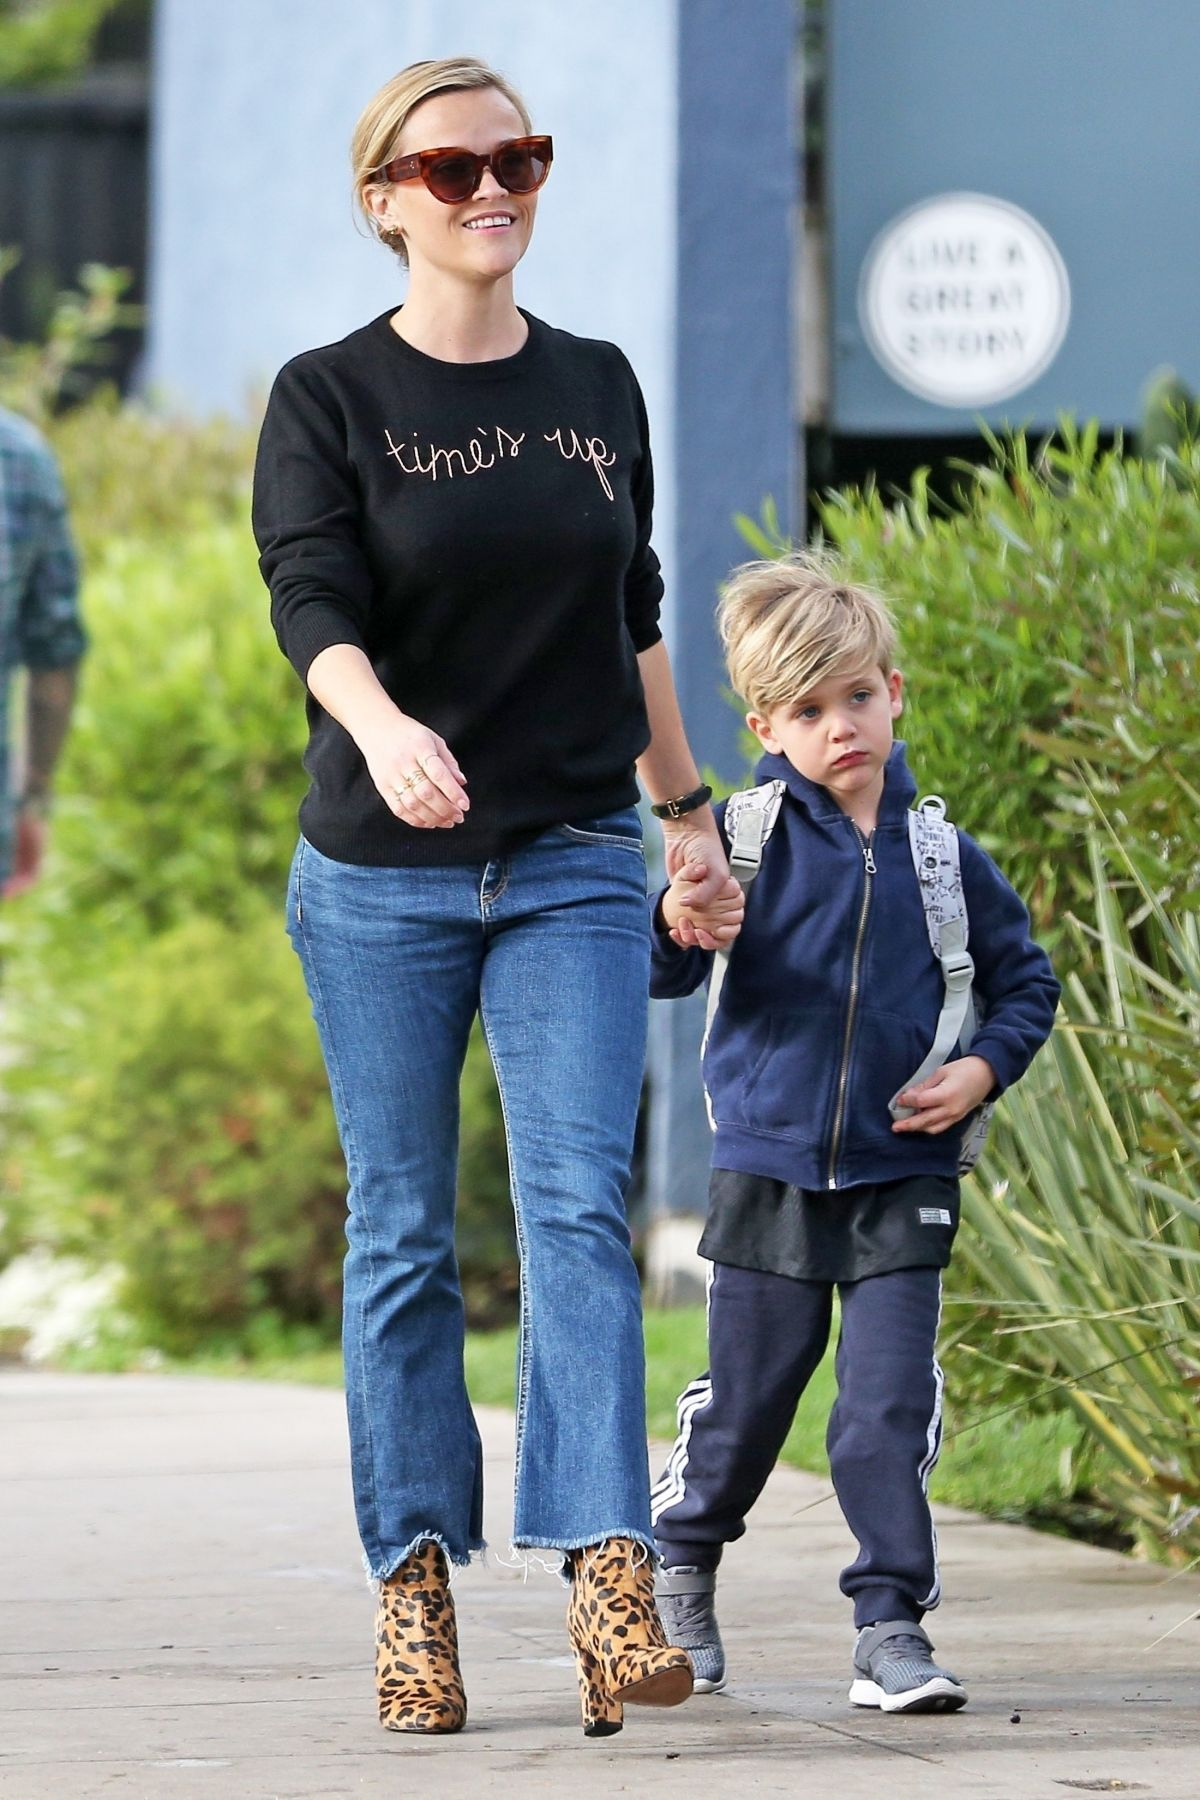 Reese Witherspoon Rocks a Times Up shirt while dropping